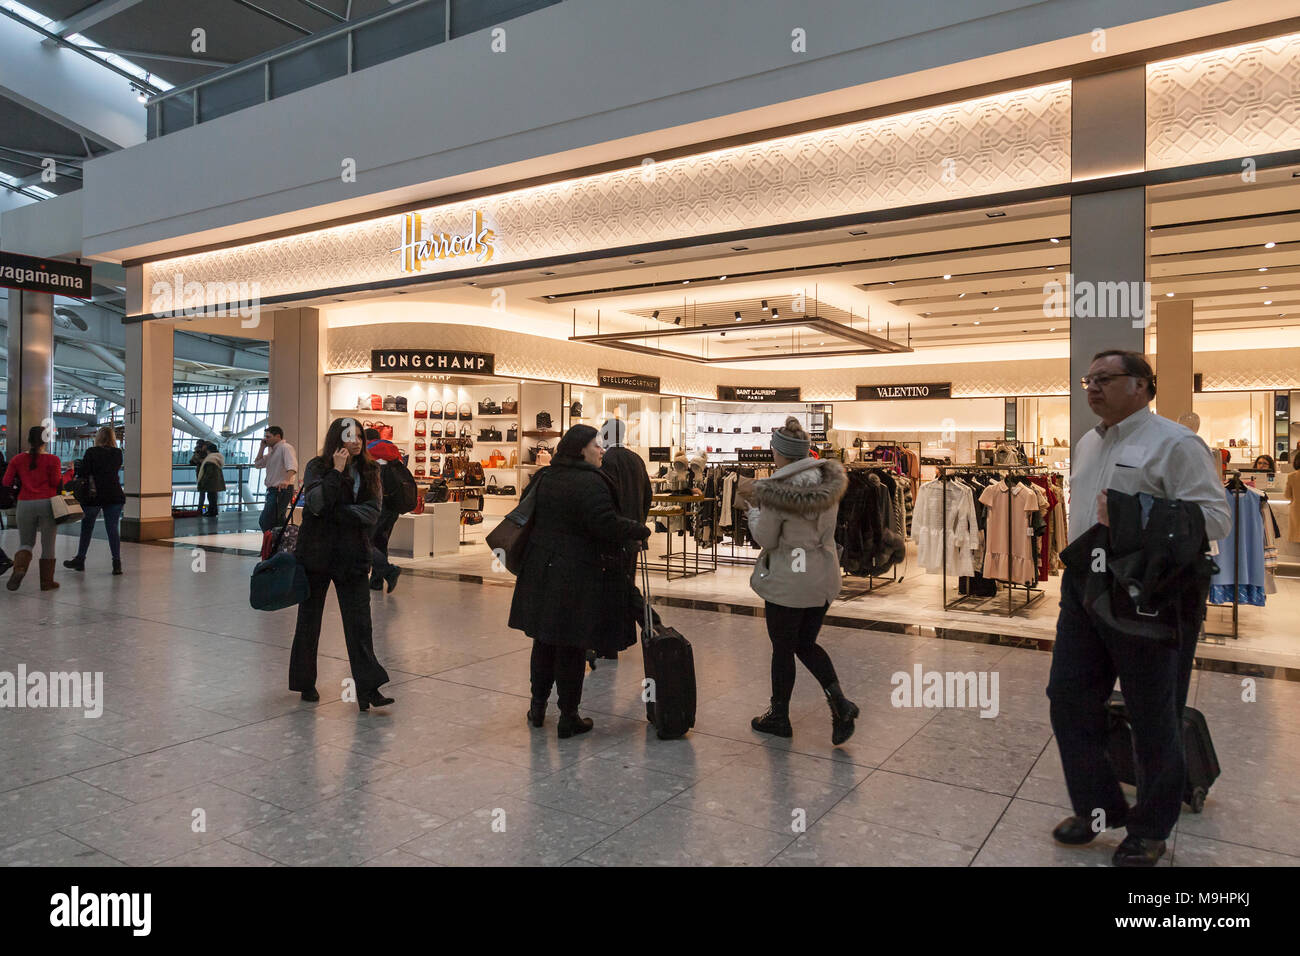 Departing air travel passengers outside Harrods retail outlet in Heathrow Airport, Terminal Five, London, England, UK. - Stock Image